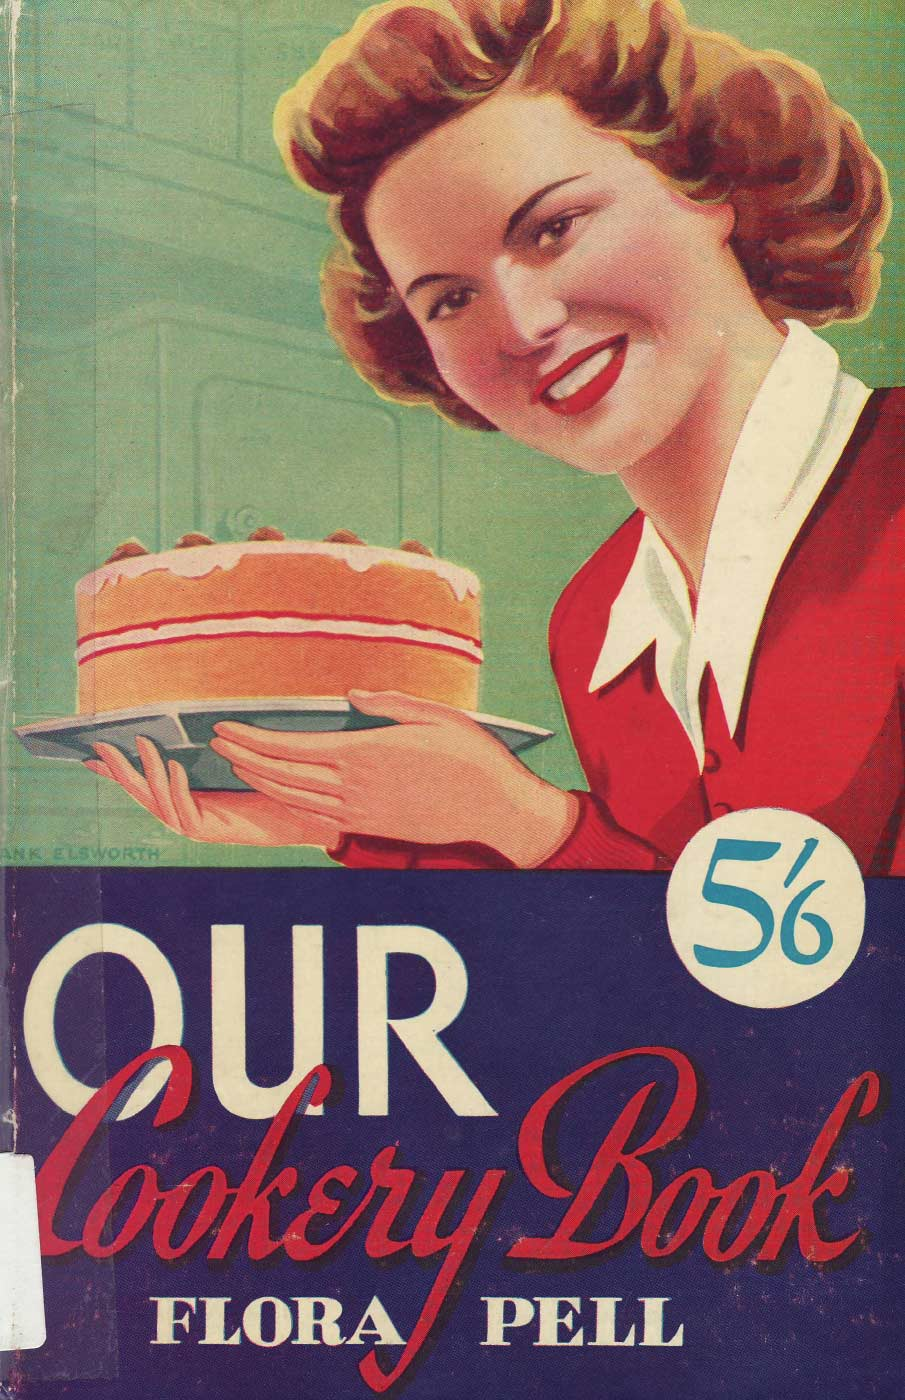 Cover of a book titled 'our cookery cookbook' by Flora Pell. There is an illustration of a woman smiling and holding up a cake on a plate. - click to view larger image